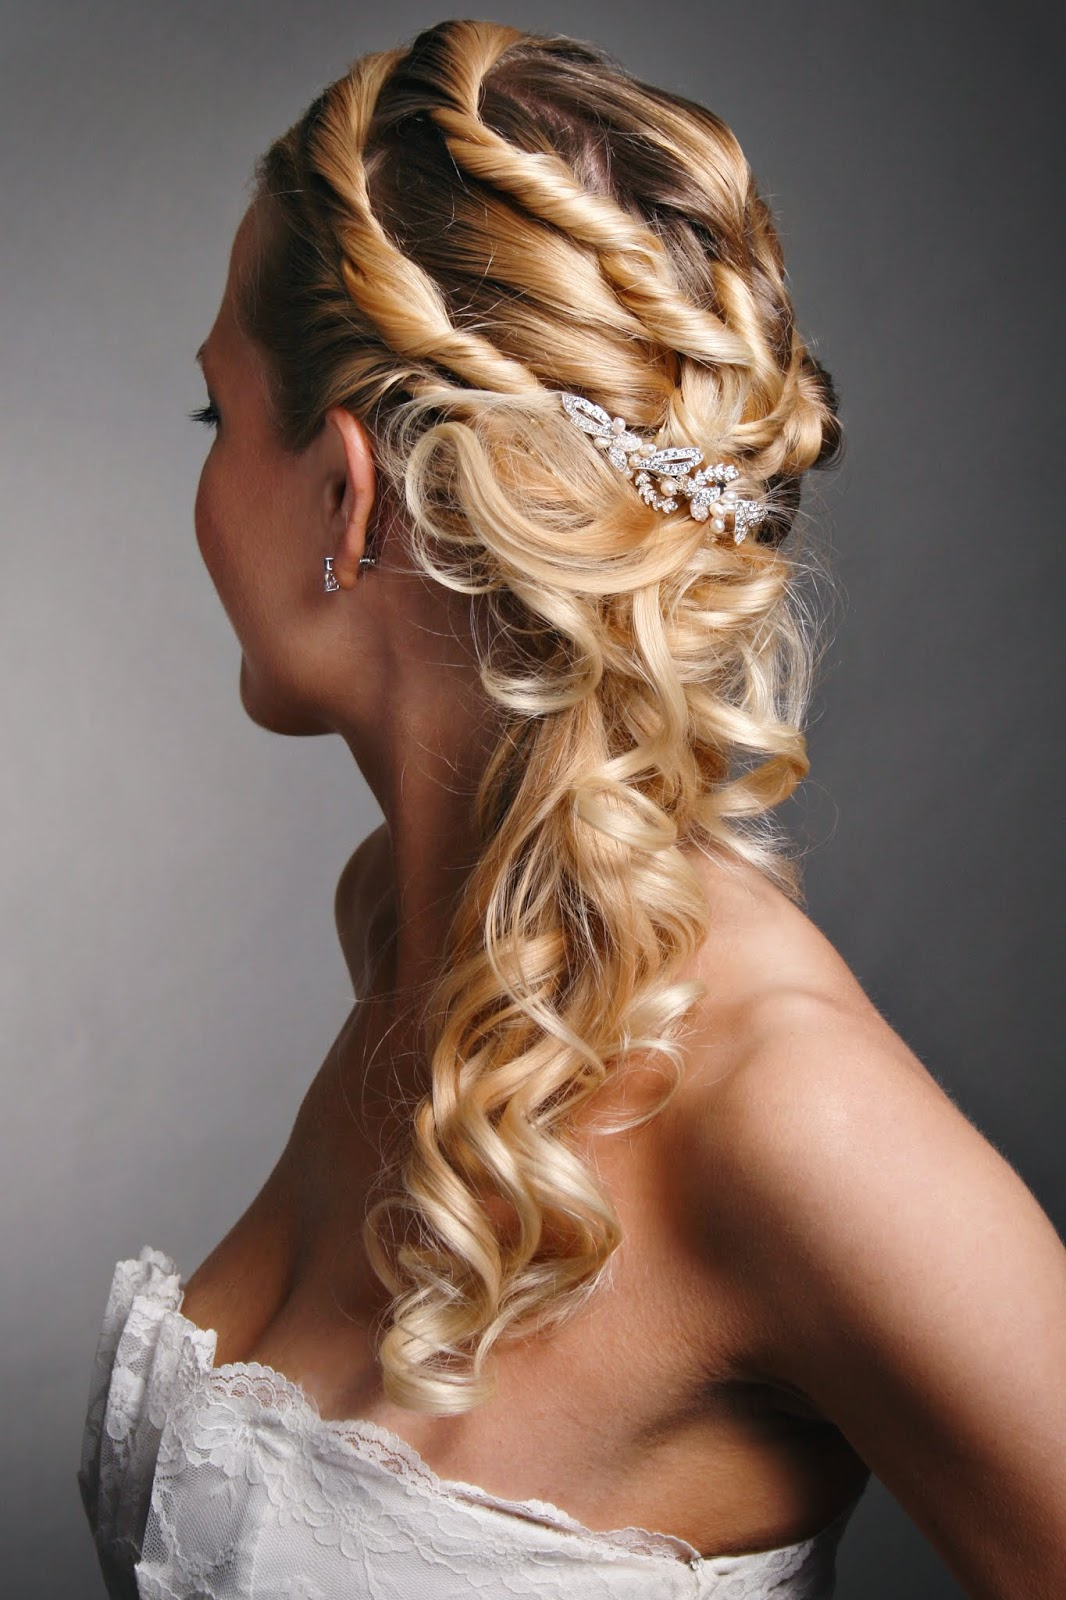 Hairstyles For Brides Or For Wedding Prom 2018 Hairstyles Newly